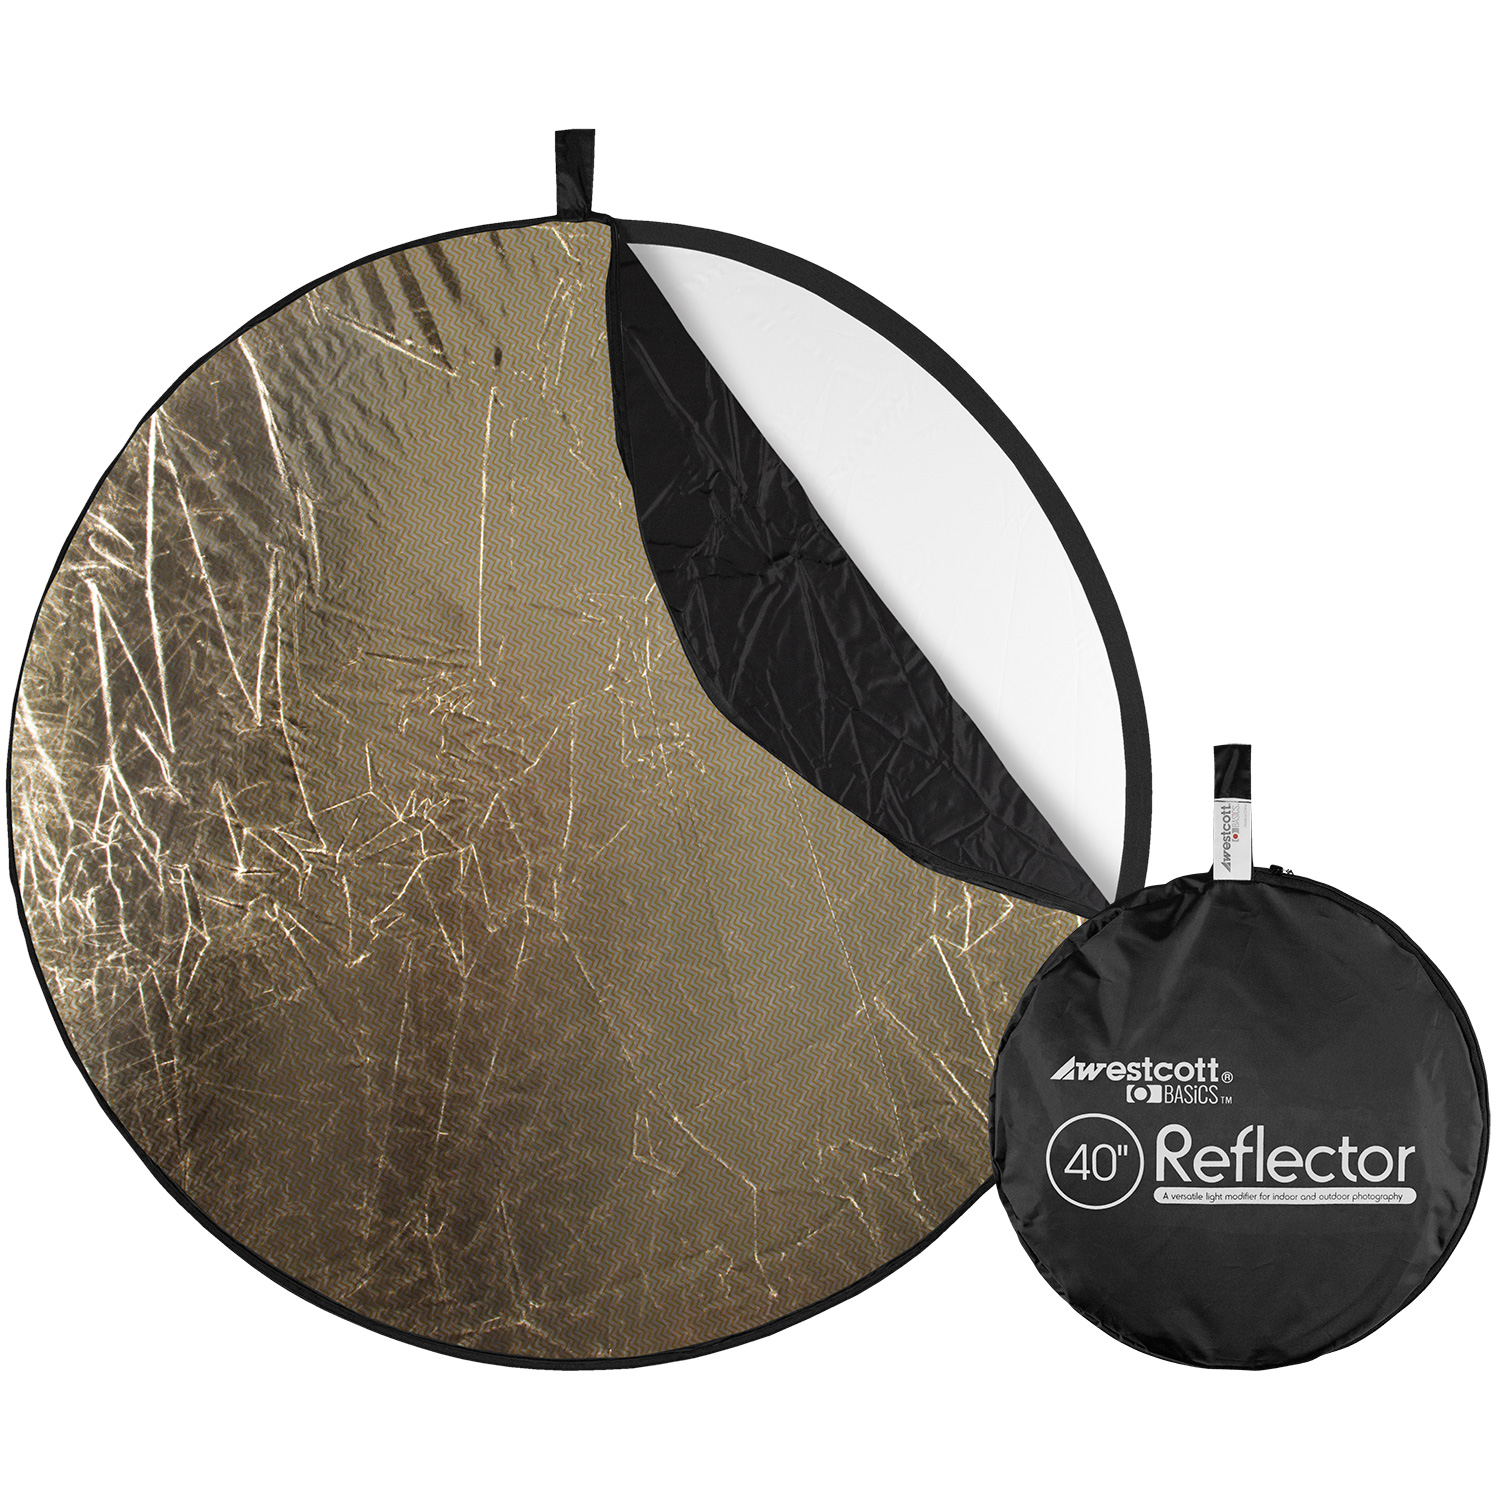 Basics 40-in. 5-in-1 Sunlight Reflector